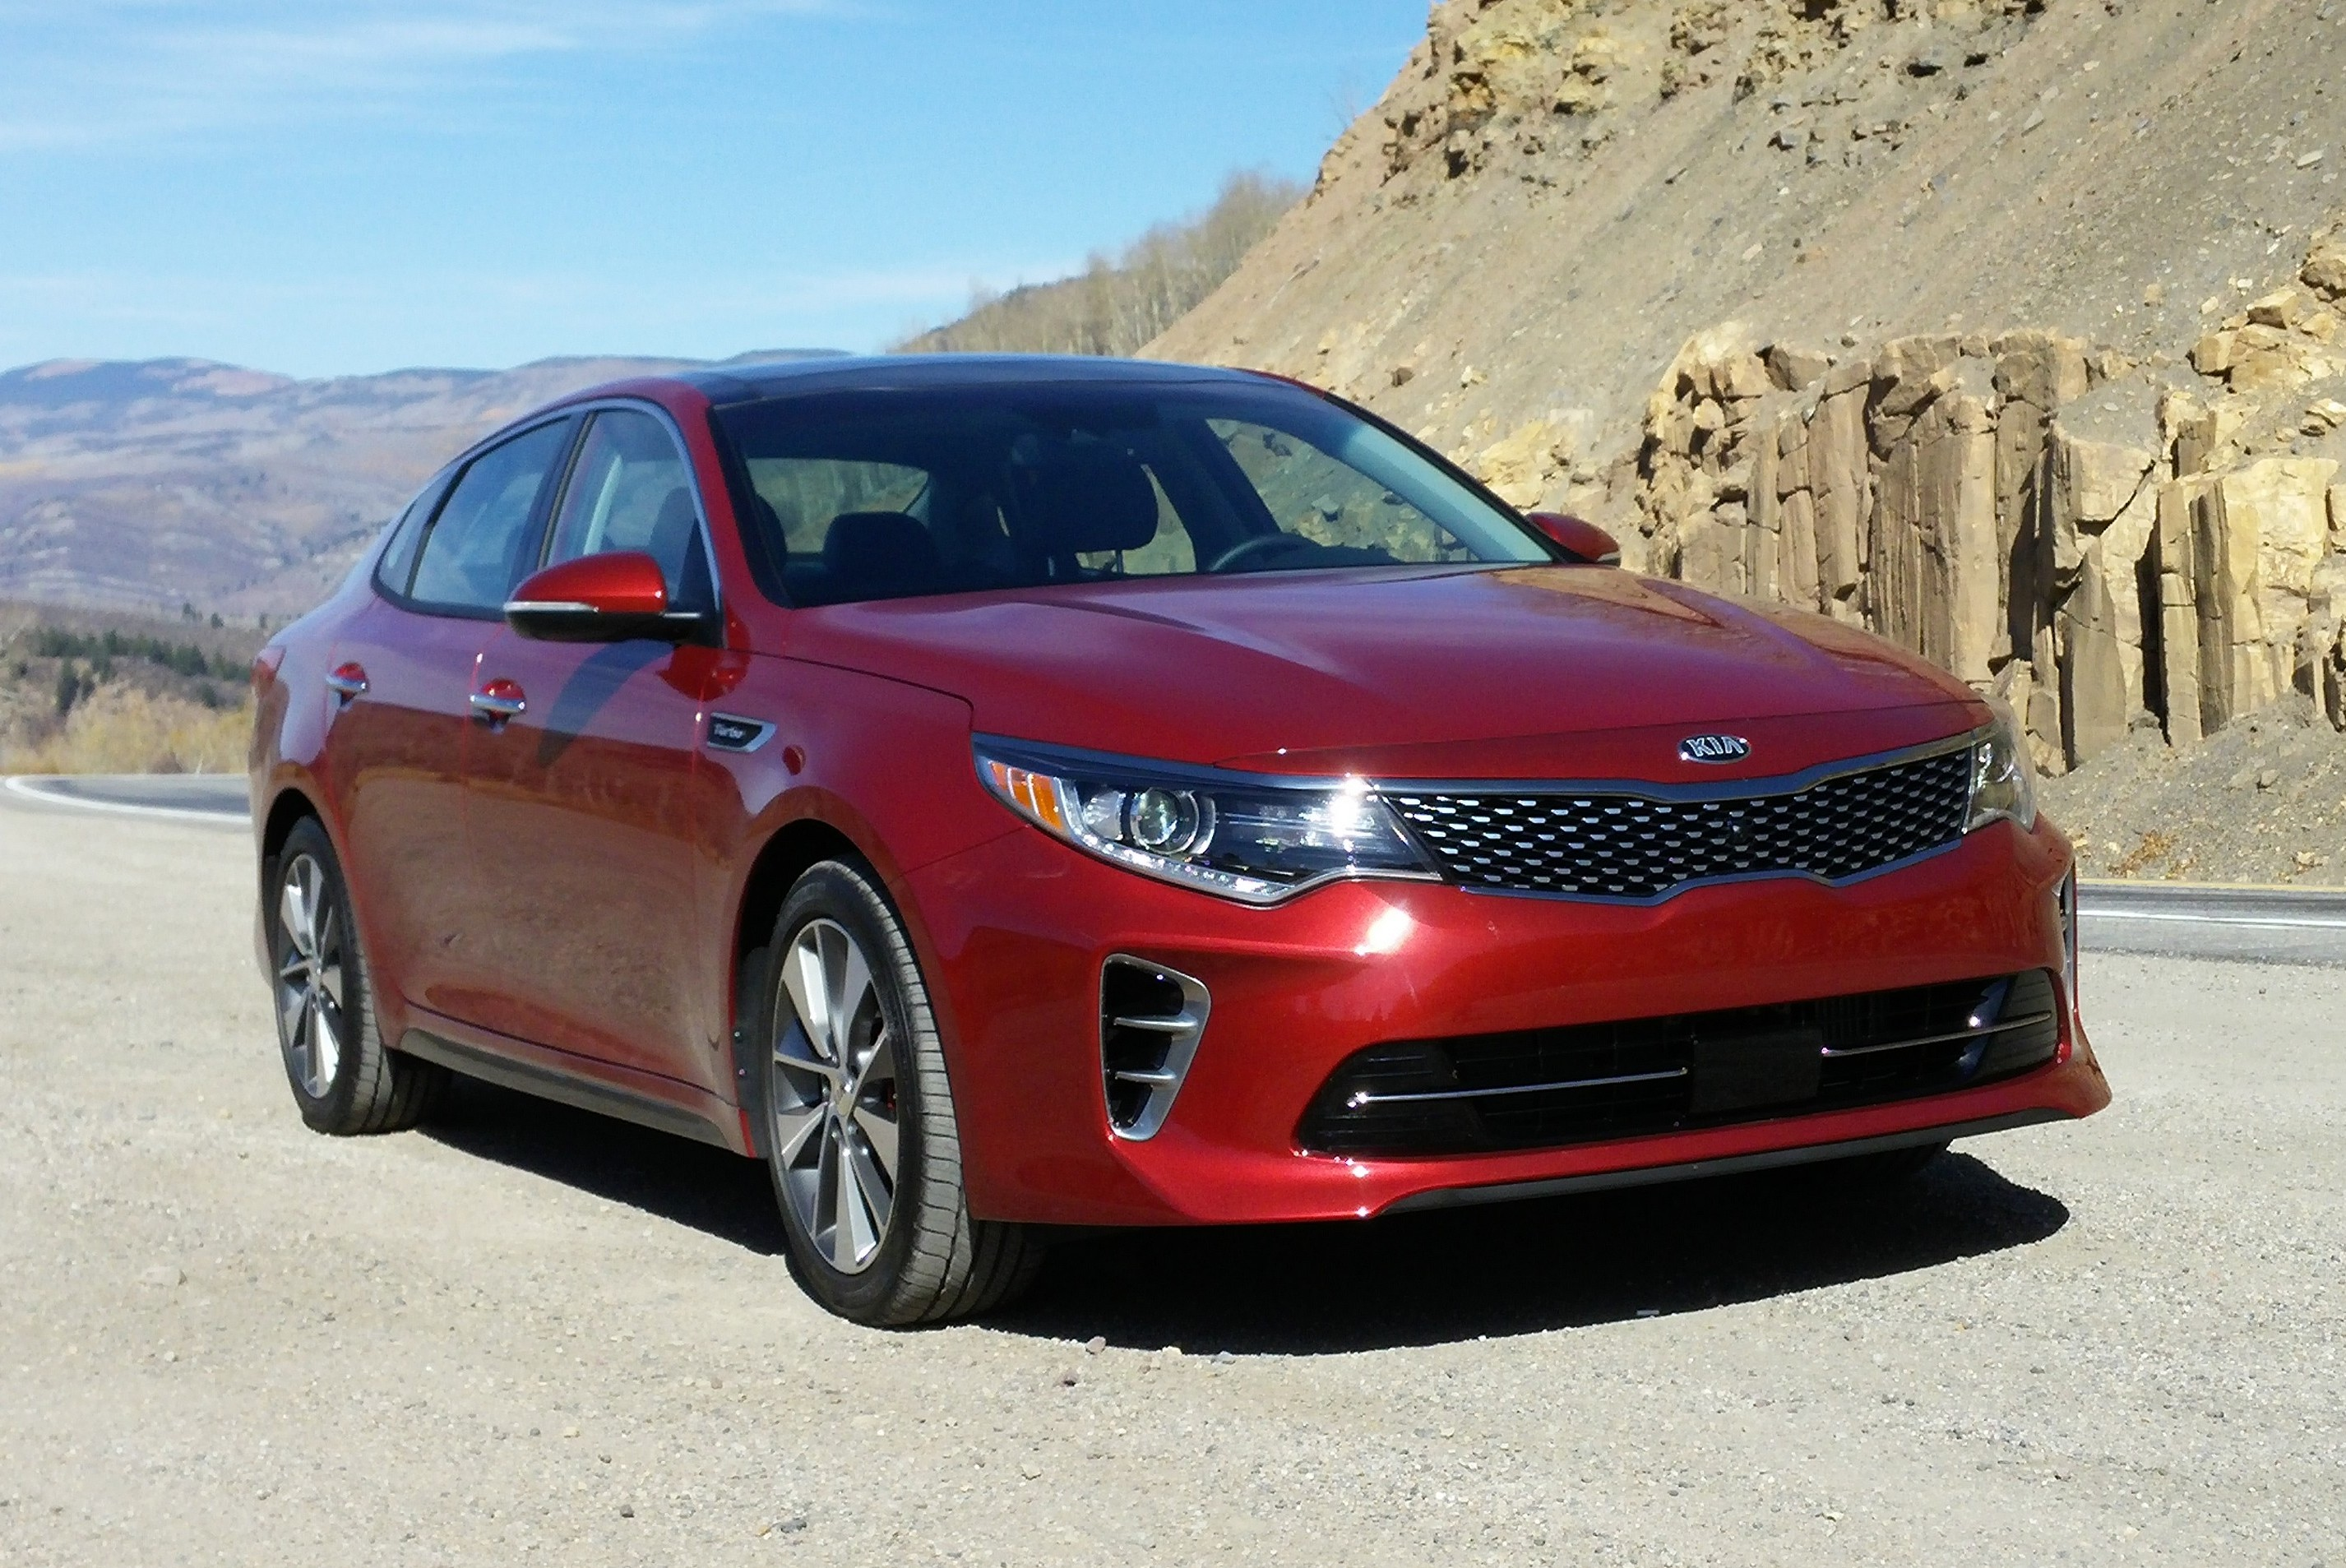 chase drives ca test car optima hybrid drive autos kia